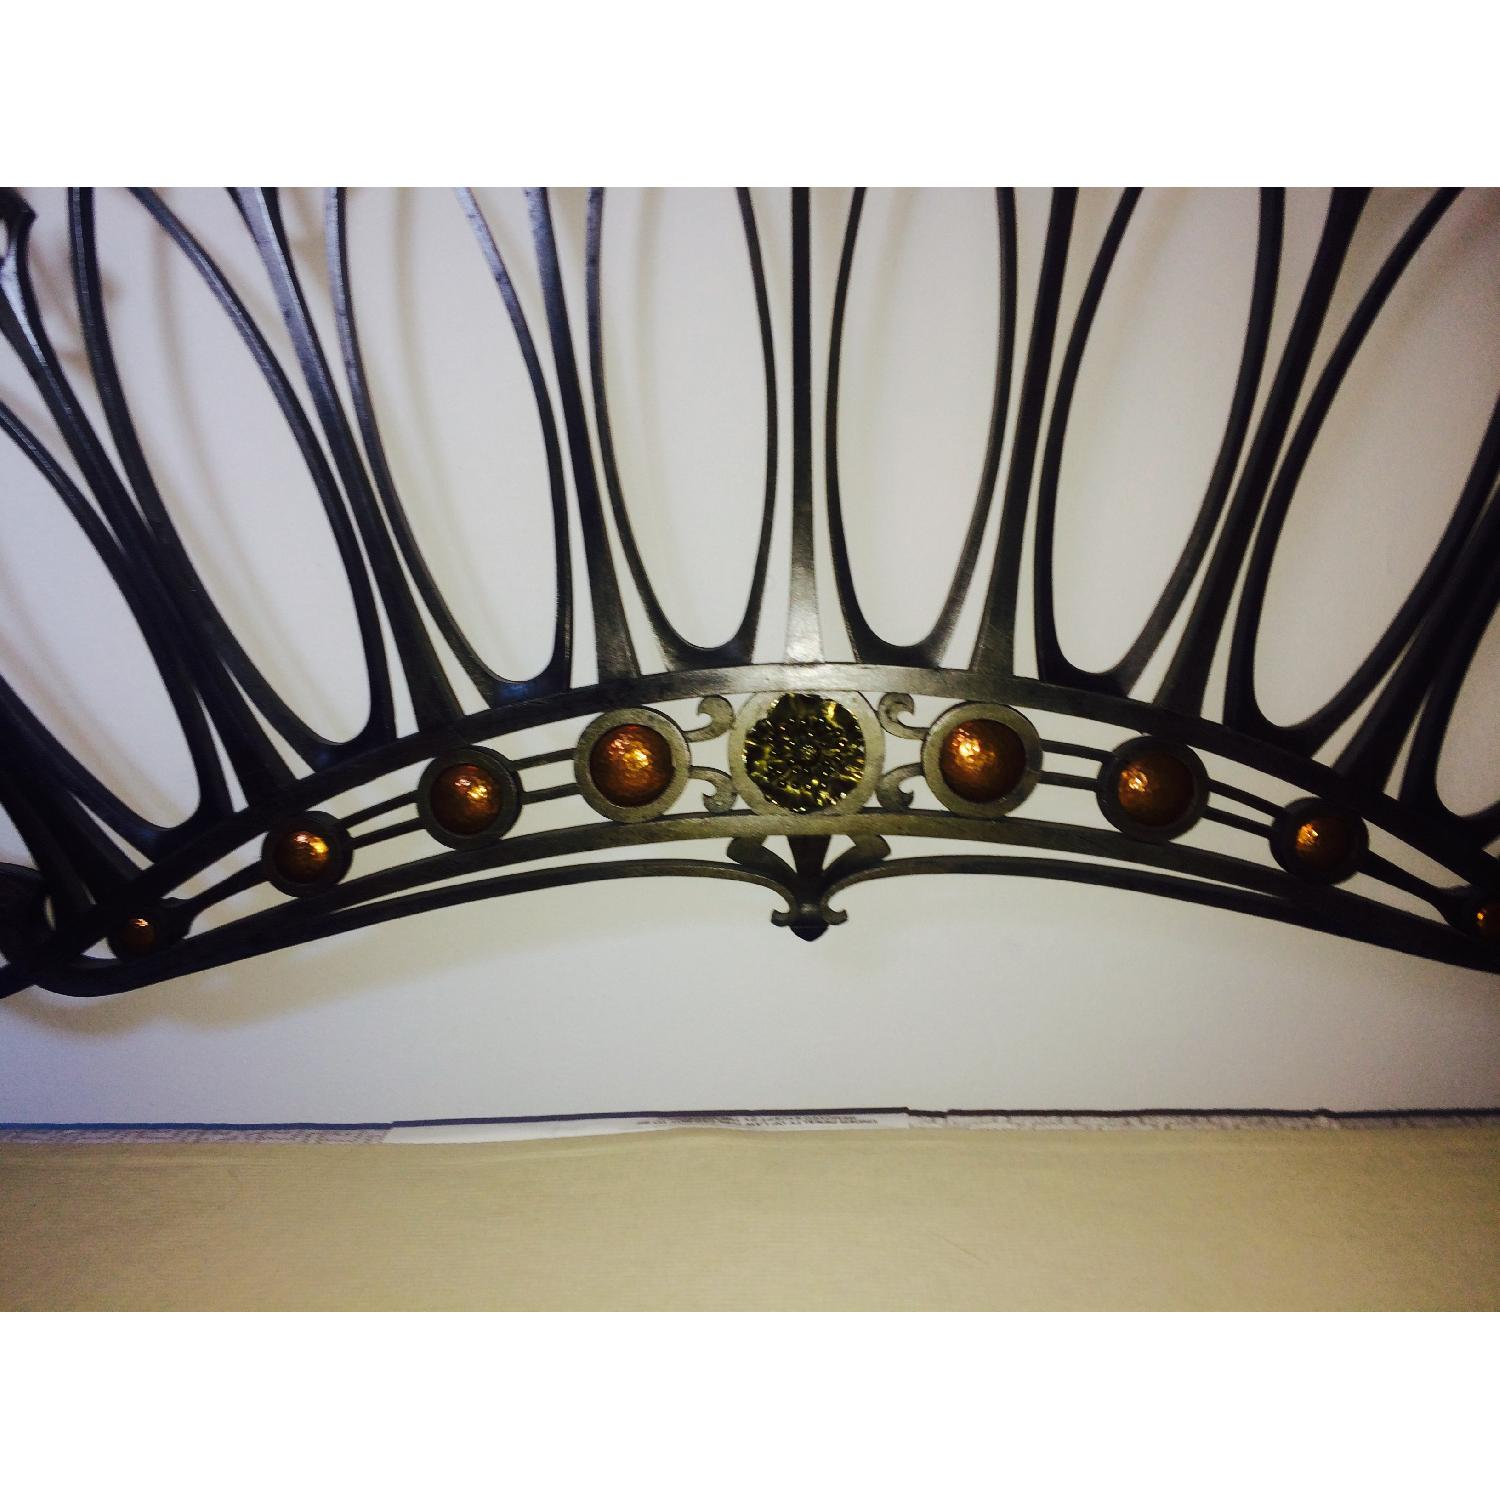 Early 20th-Century French Art Nouveau Wrought Iron and Gilt Bronze Headboard - image-3